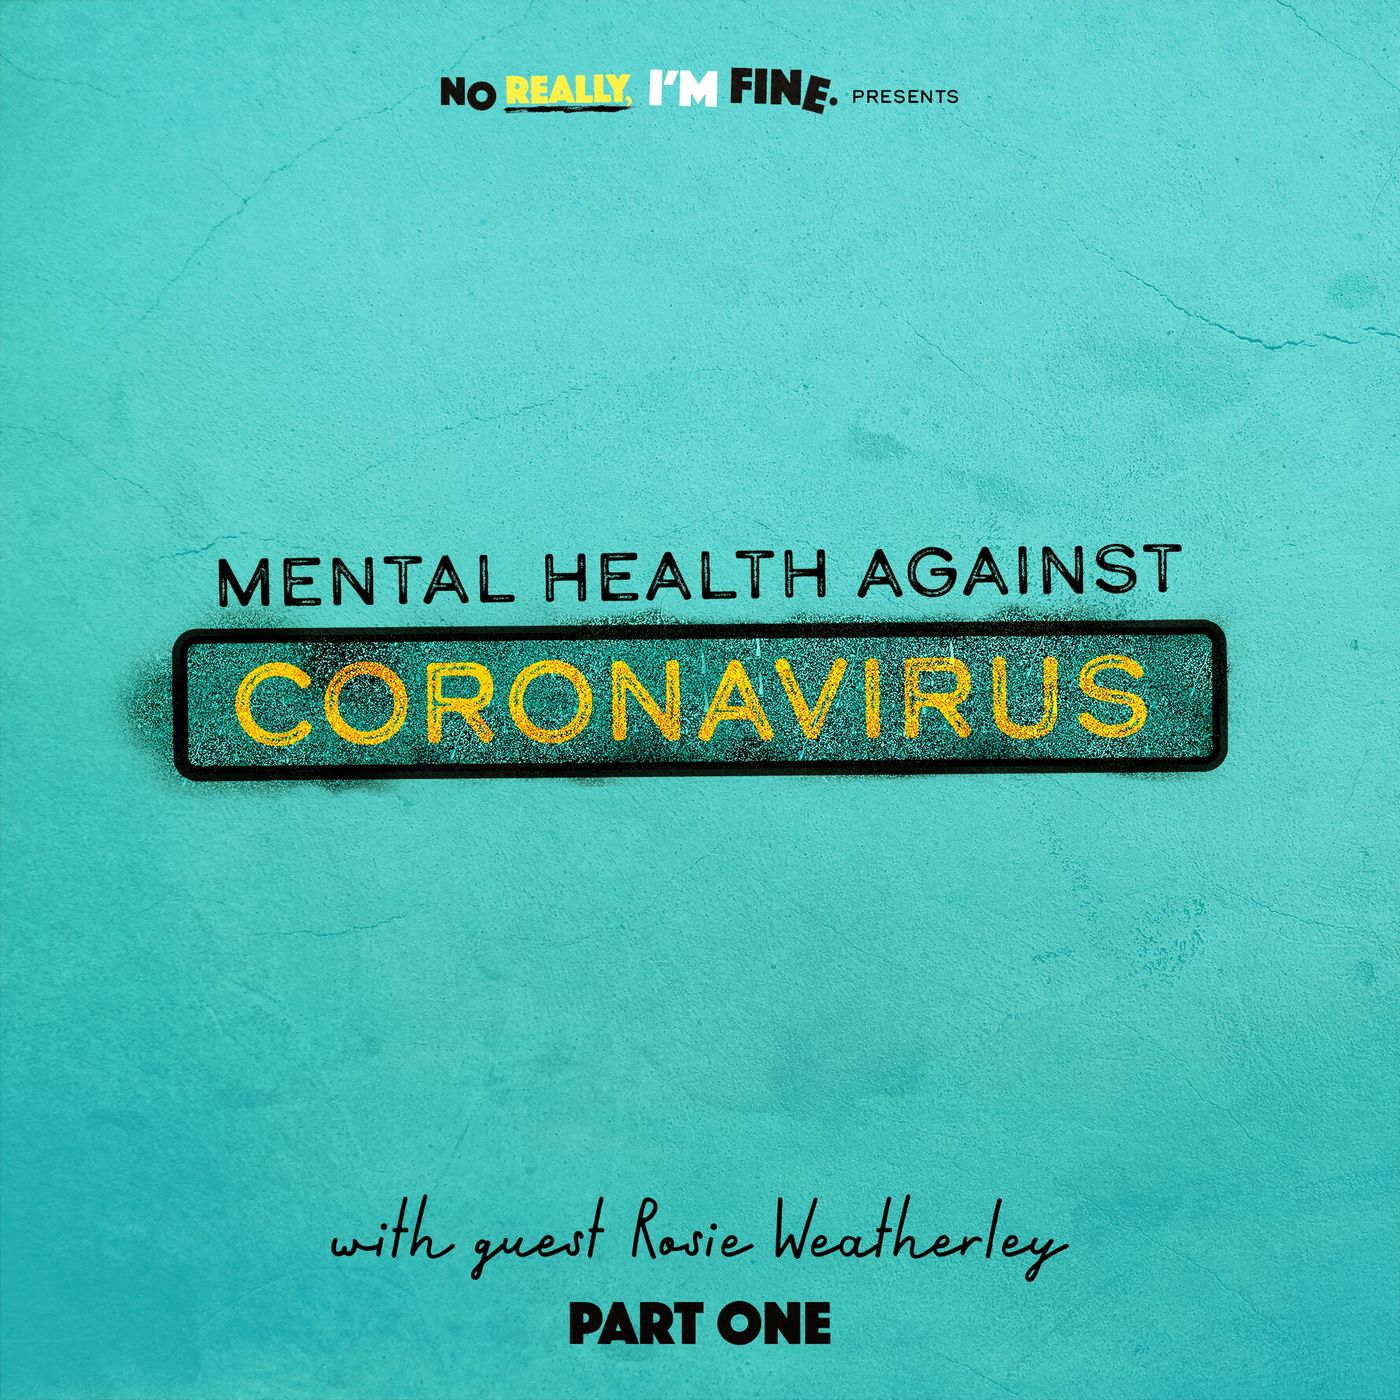 No Really, I'm Fine - Mind talk Corona virus and how to stay positive